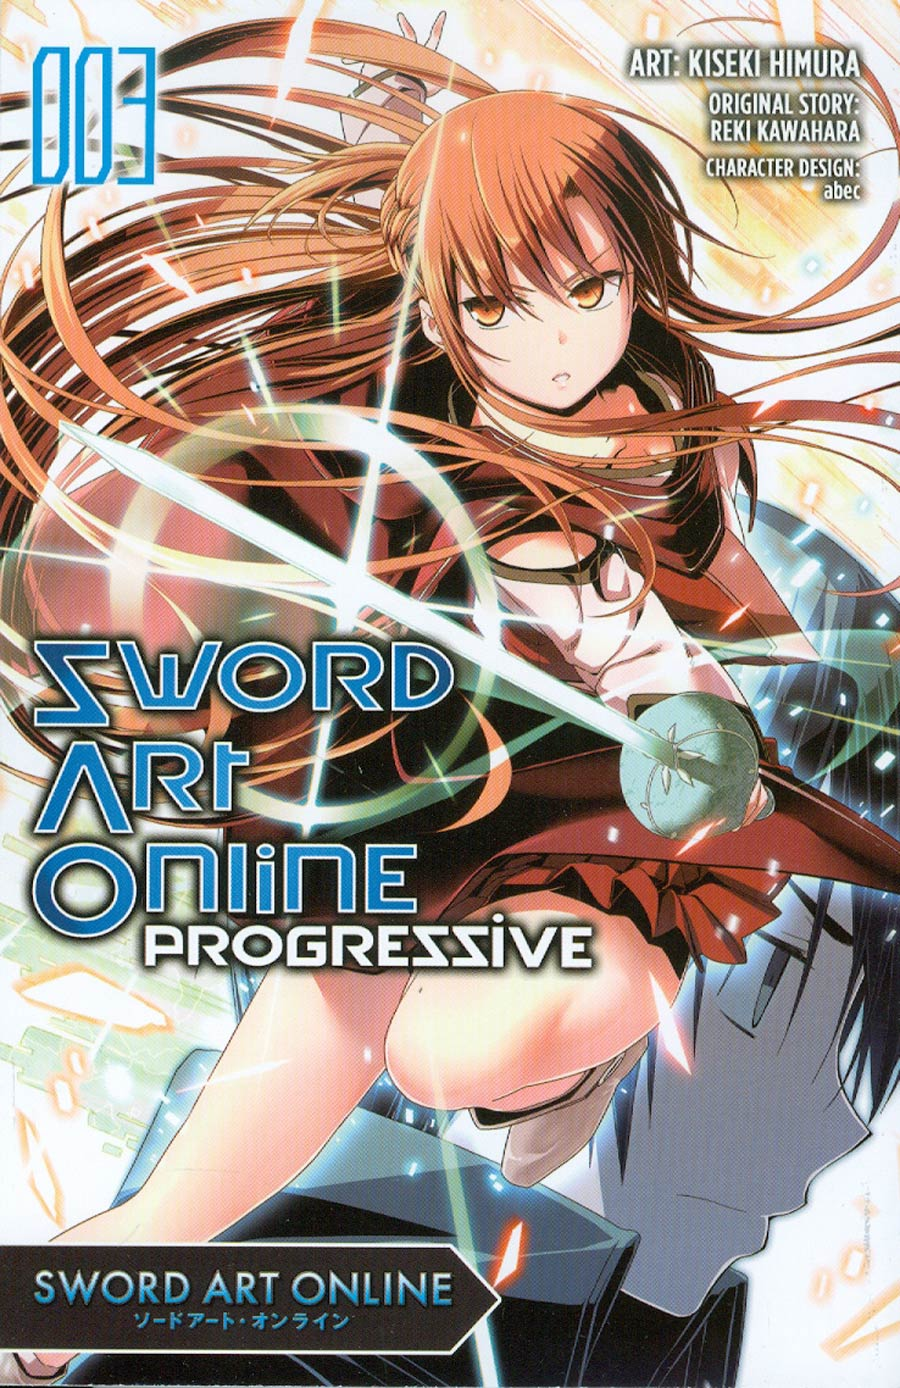 Sword Art Online Progressive Vol 3 GN